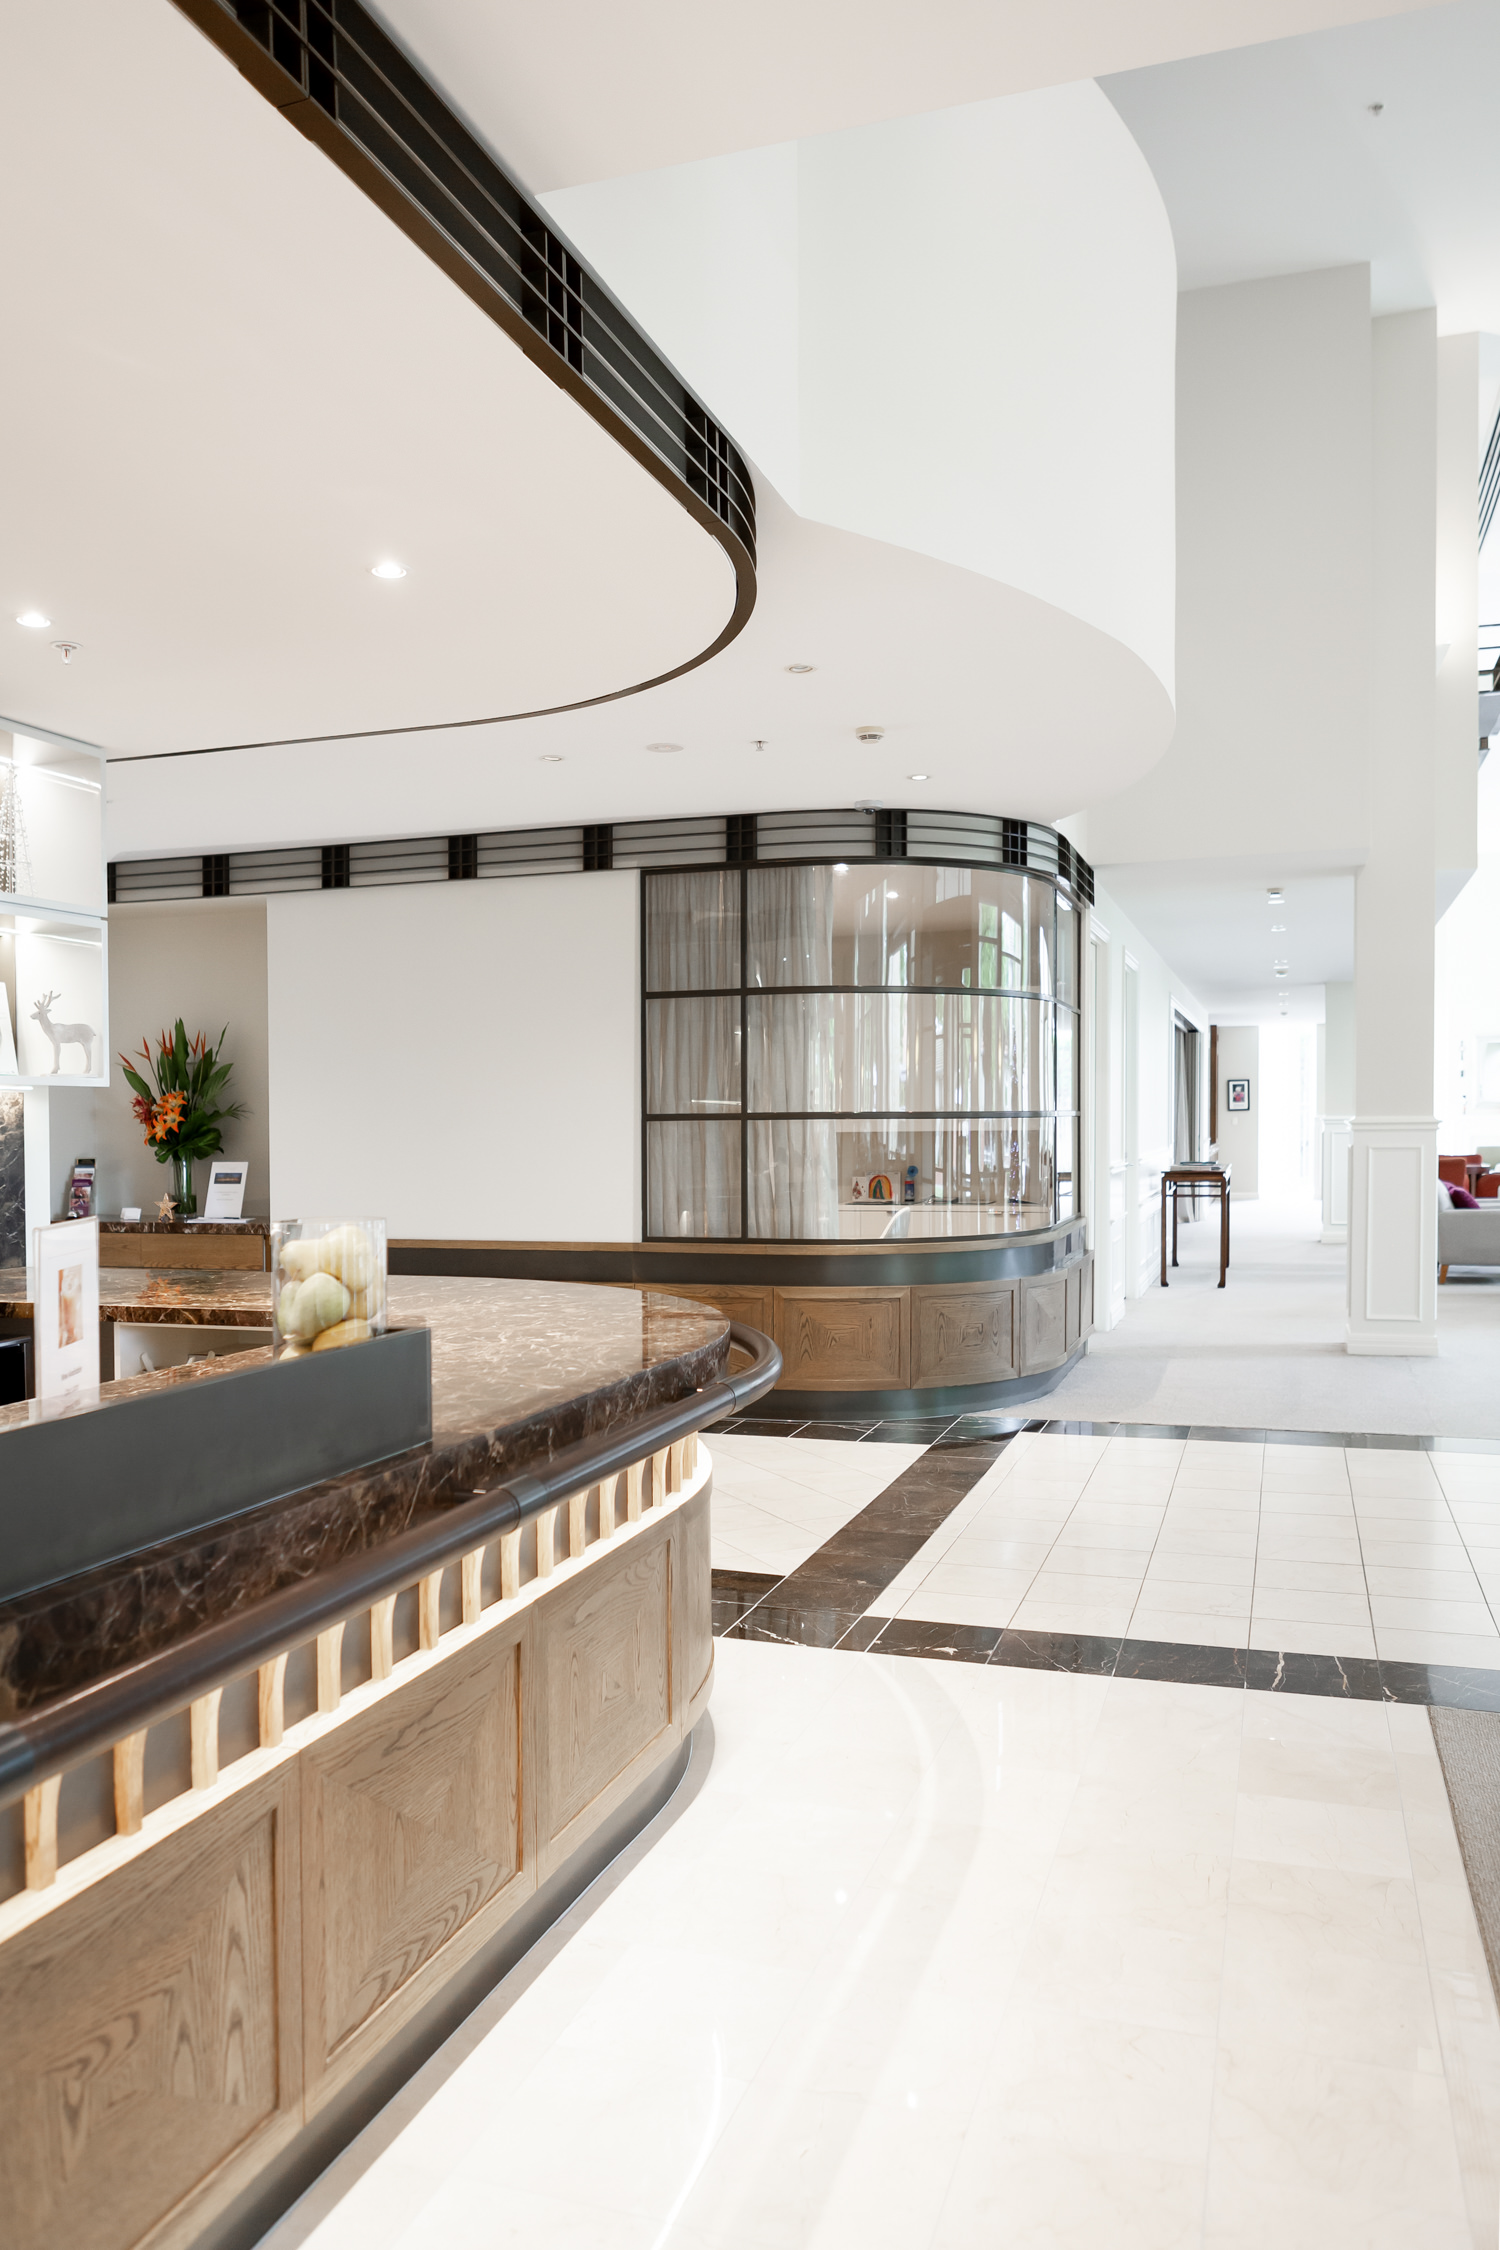 Brompton commercial construction mutli residential hospitality